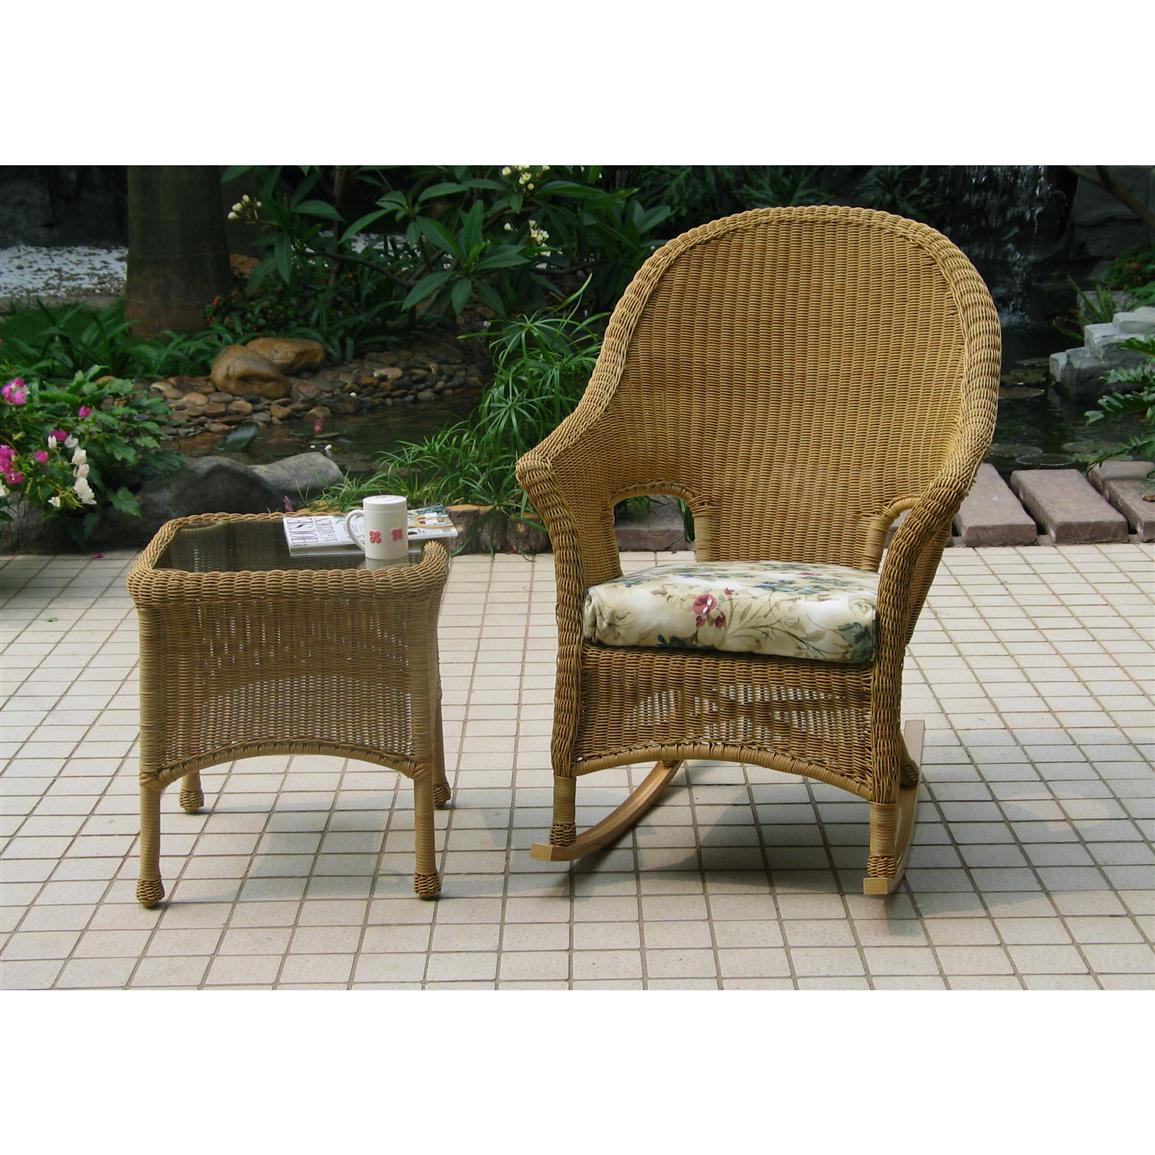 chicago wicker outdoor patio furniture chicago wicker patio furniture chicpeastudio chicago